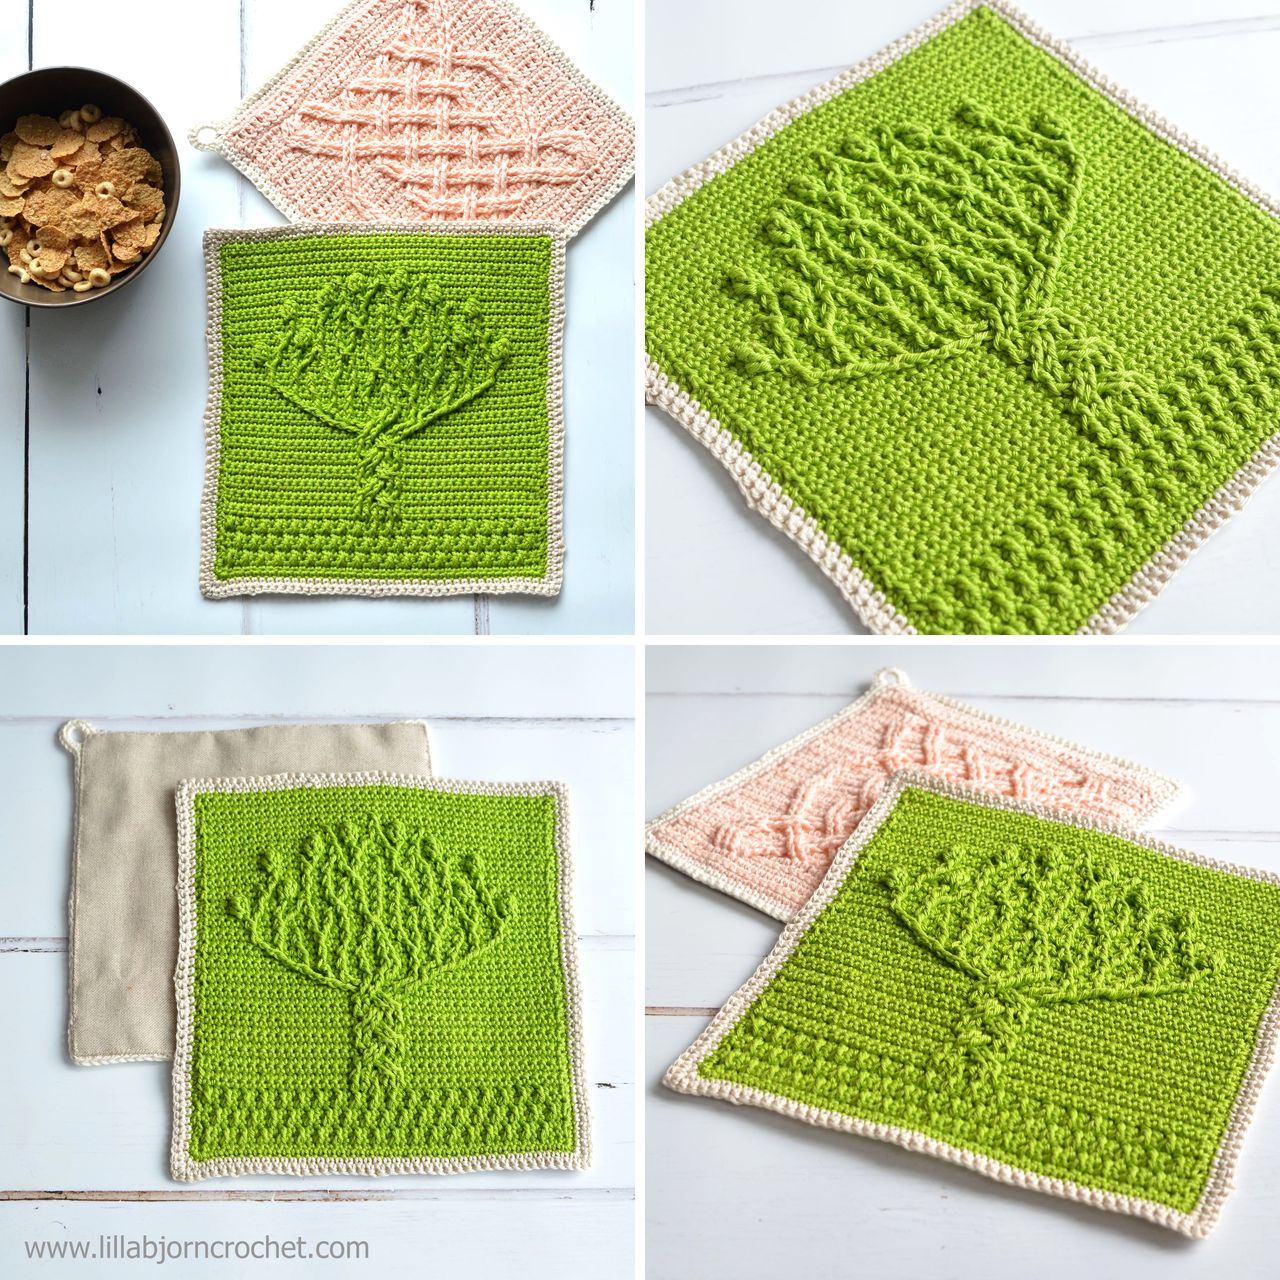 Tree of Life potholder - overlay crochet pattern by Lilla Bjorn